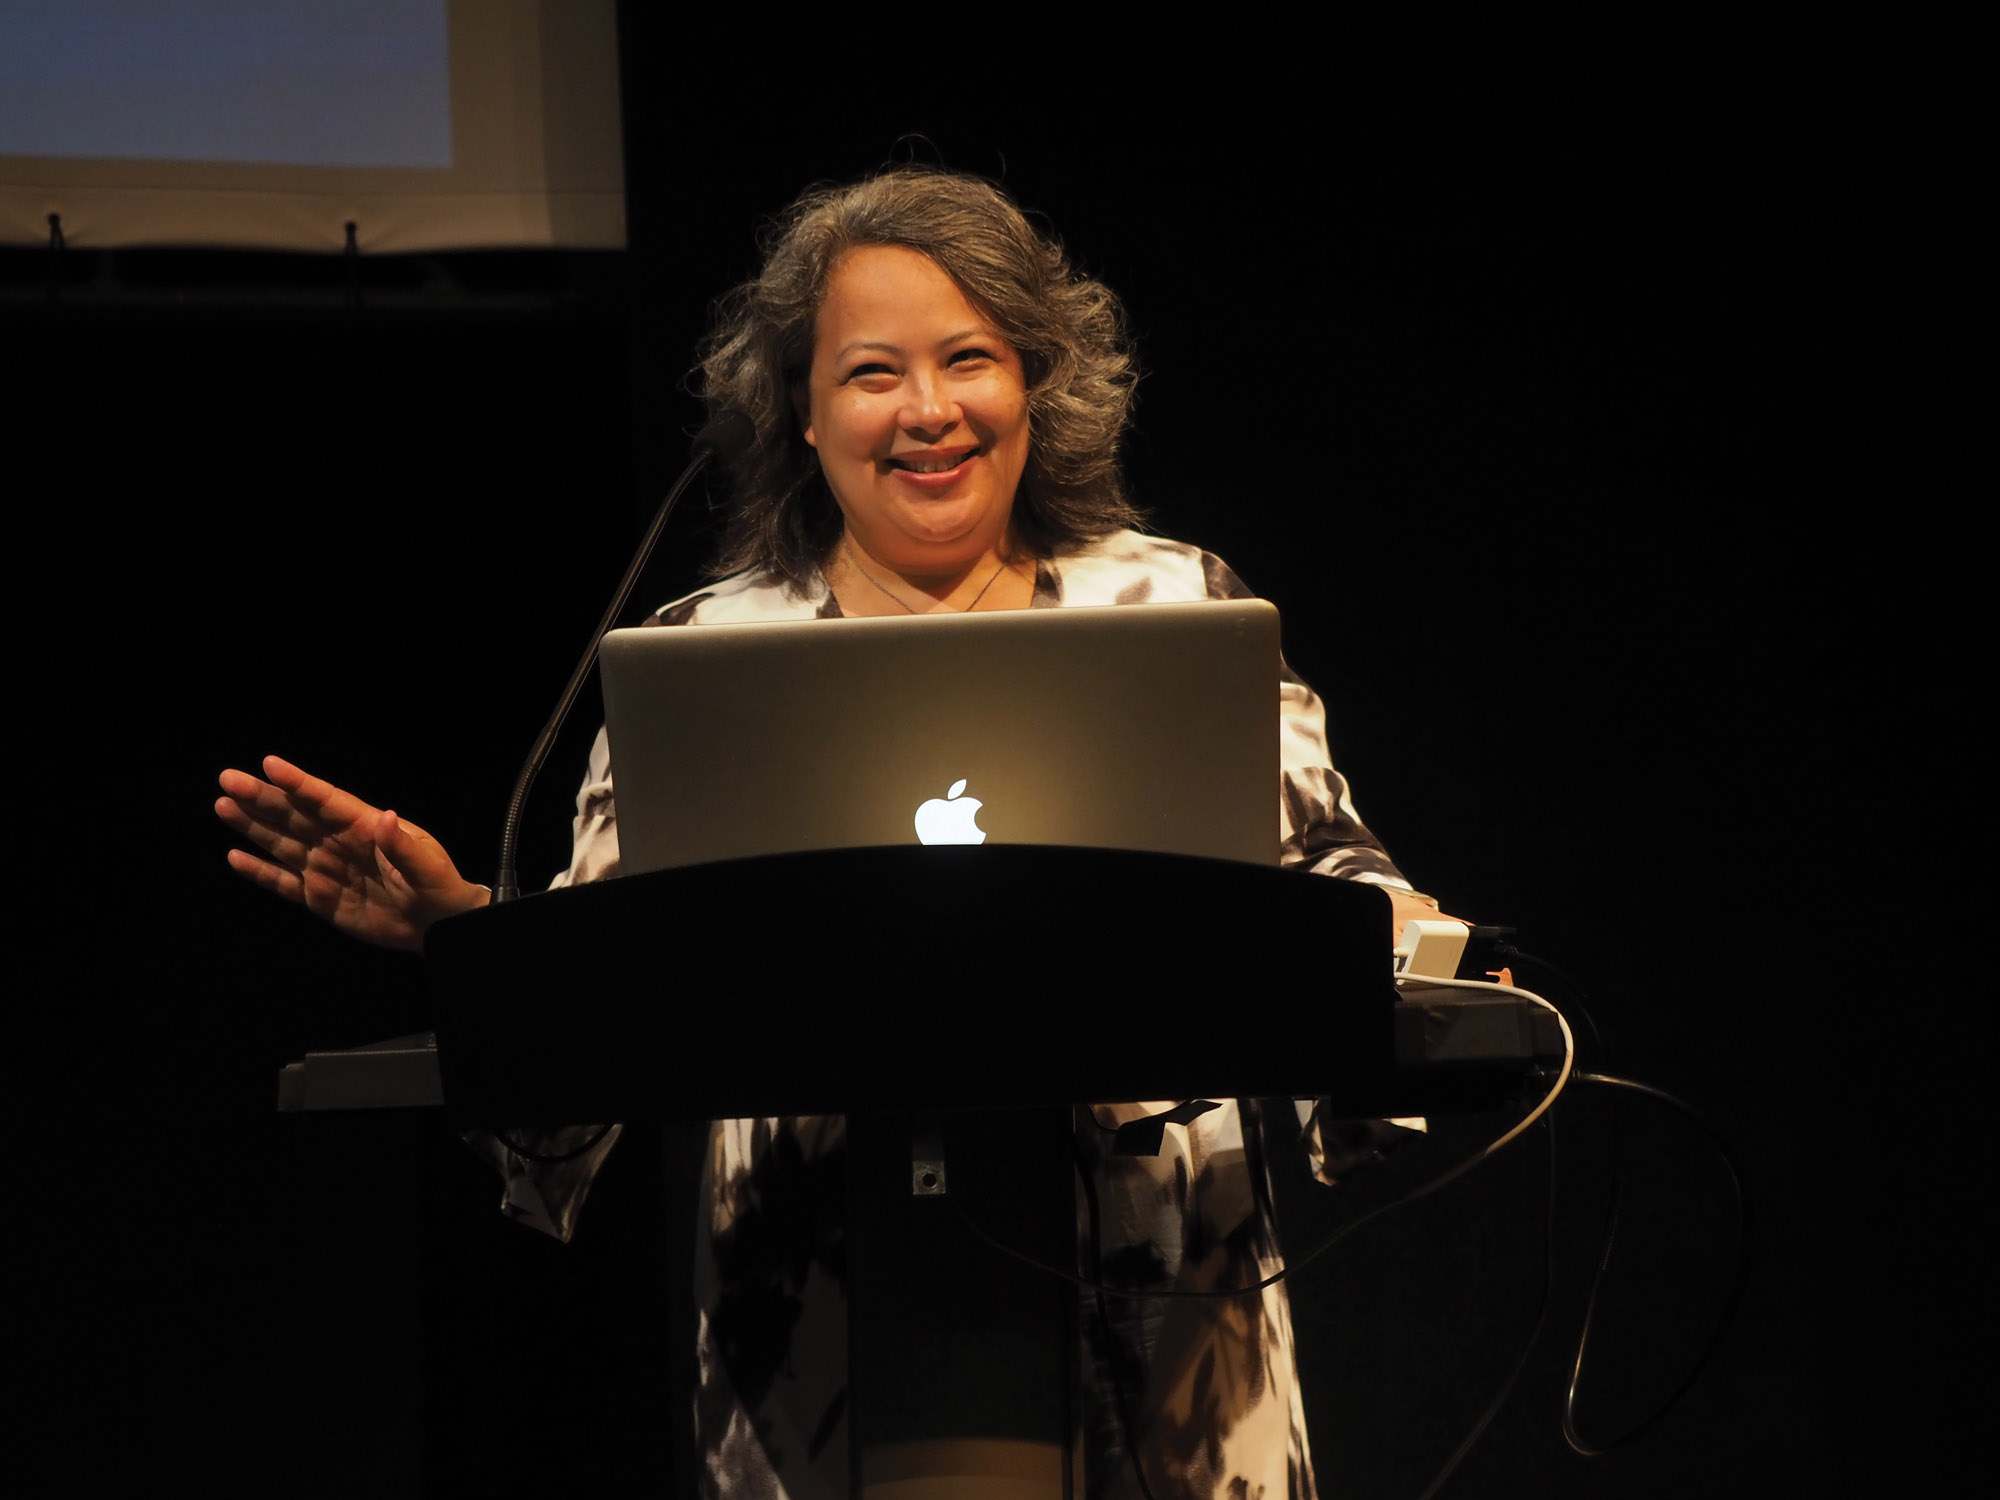 abagail dekosnik on stage during her talk